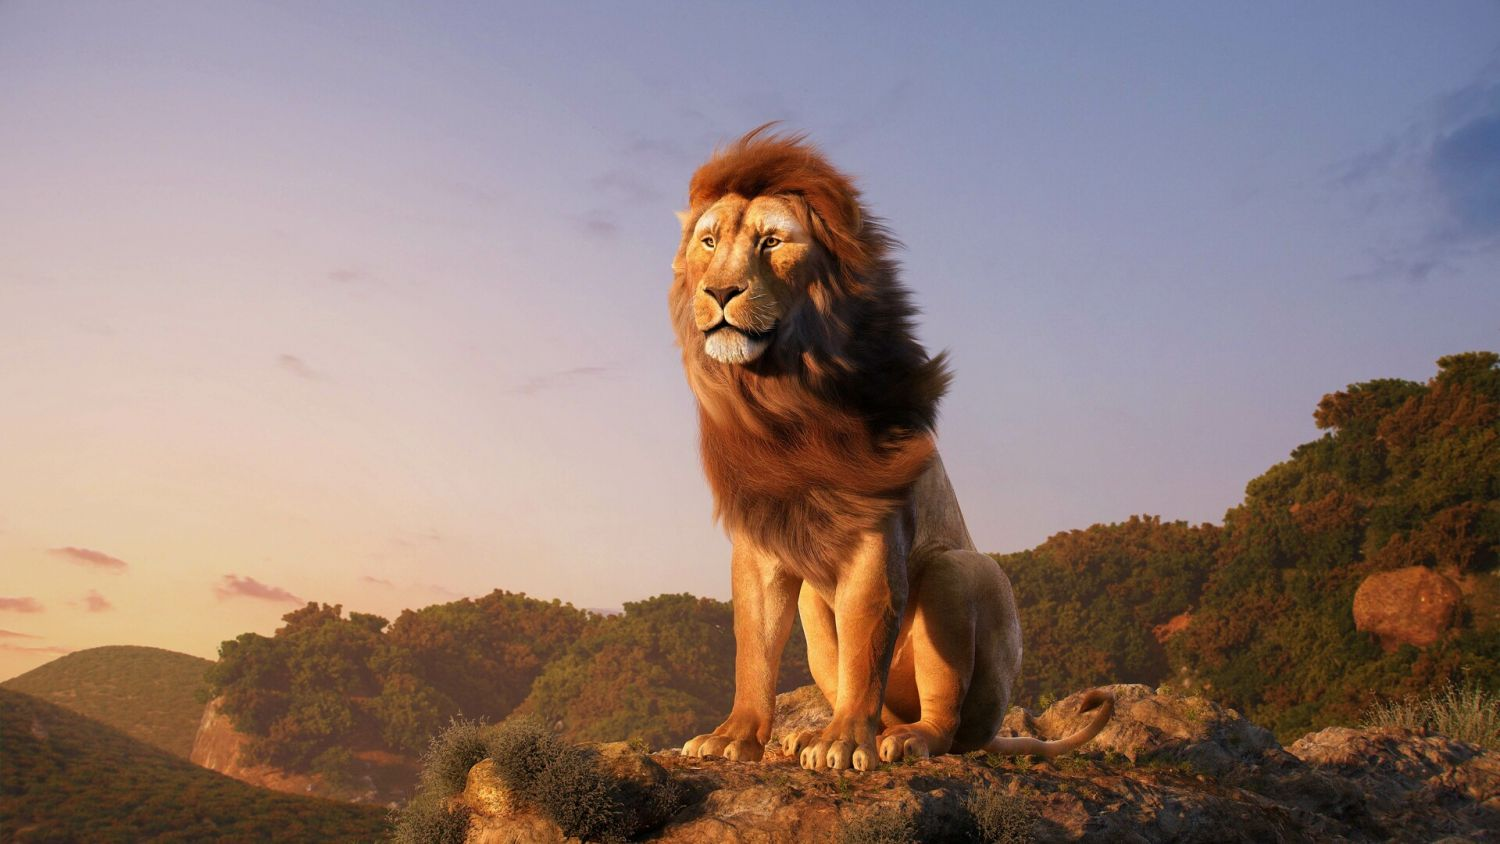 Disney S The Lion King 2 Sets Moonlight S Barry Jenkins As Director And Will Focus On Mufasa S Origin Story Geek Culture